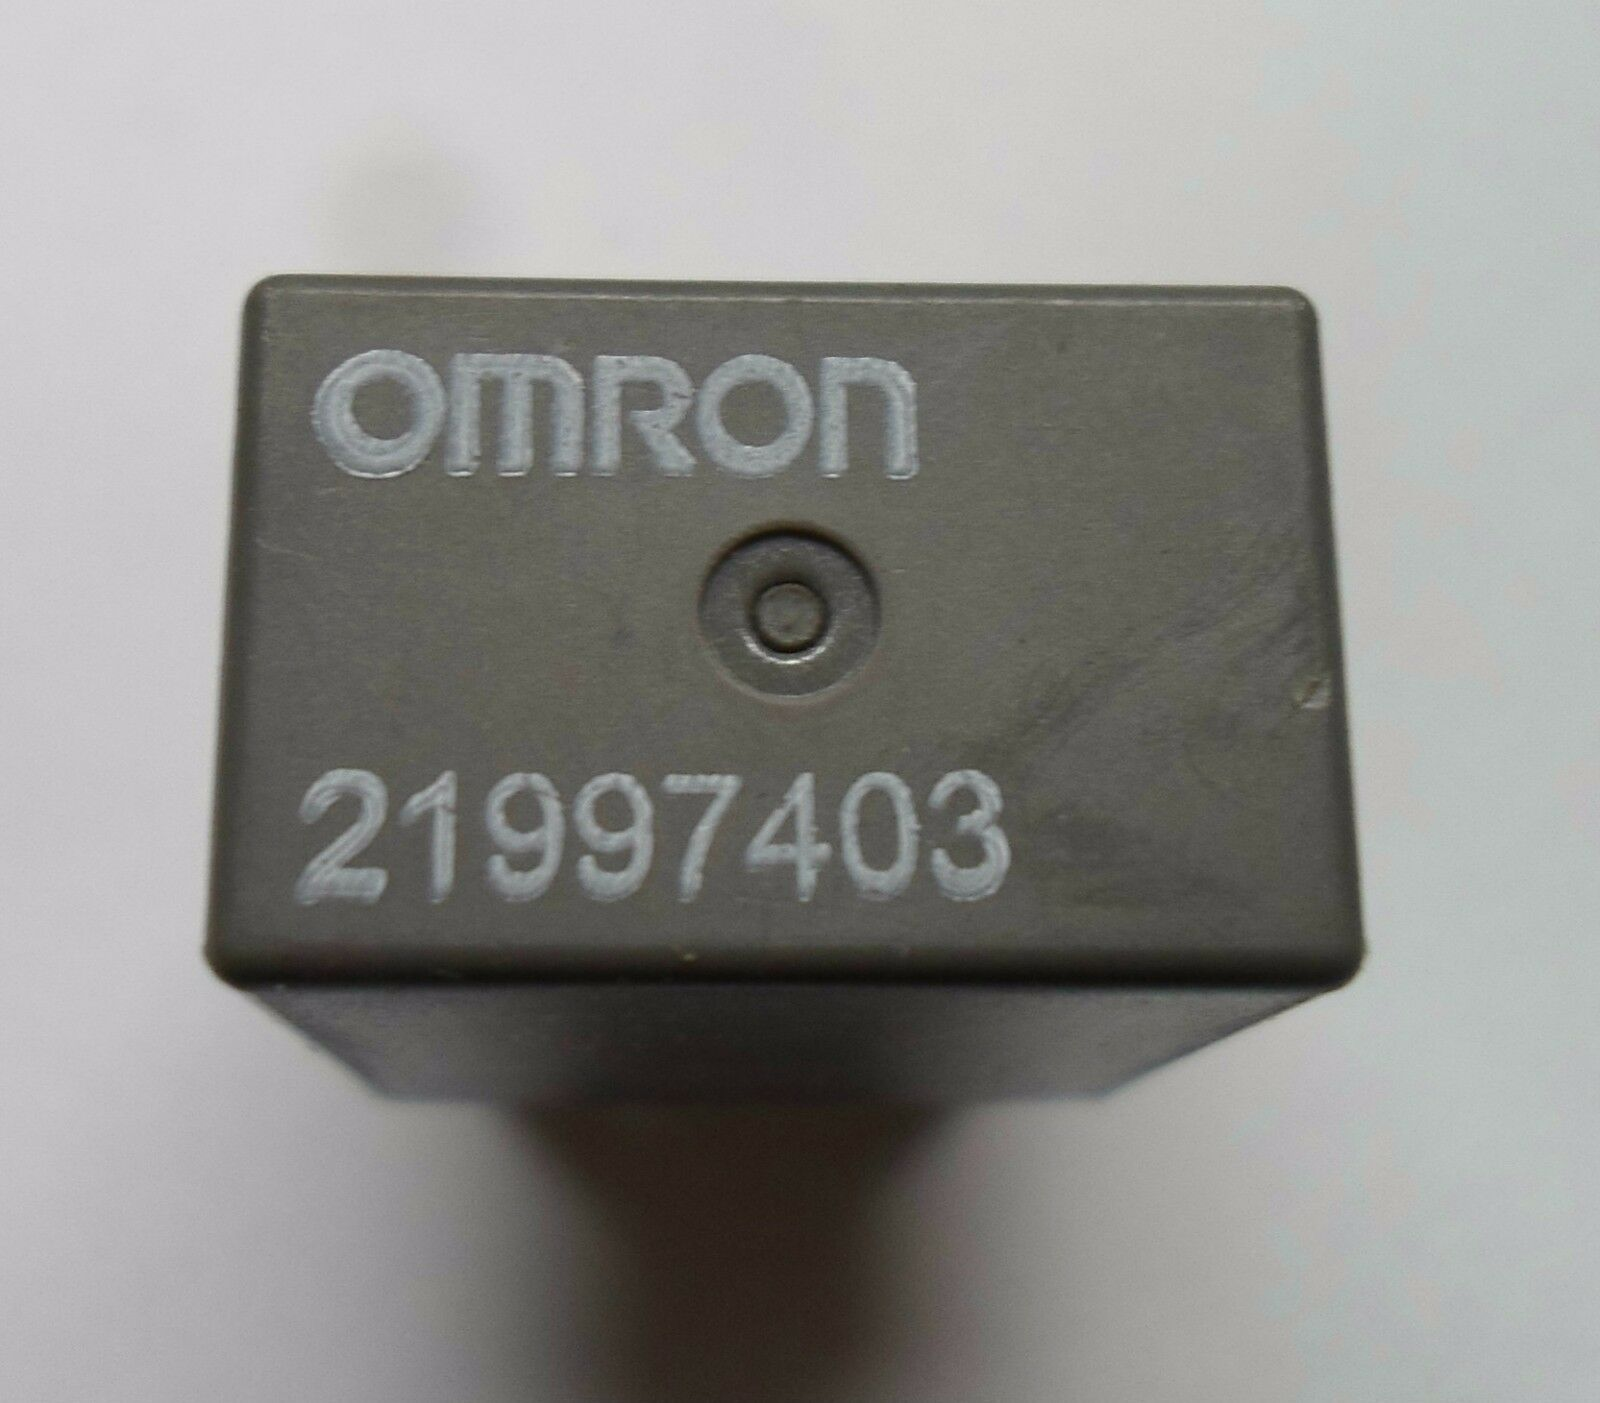 GM OMRON  RELAY 21997403   TESTED 1 YEAR WARRANTY  FREE SHIPPING!  GM3 - $8.45